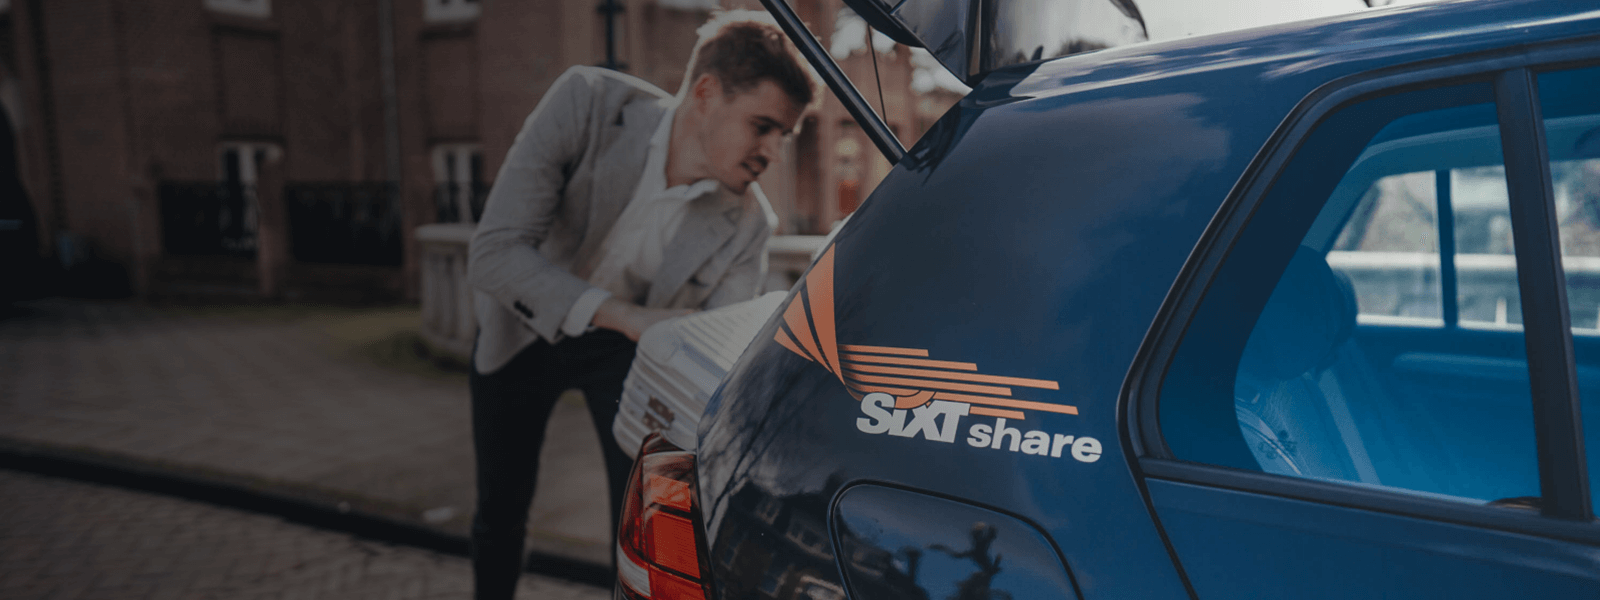 business man loading luggae into SIXT share car